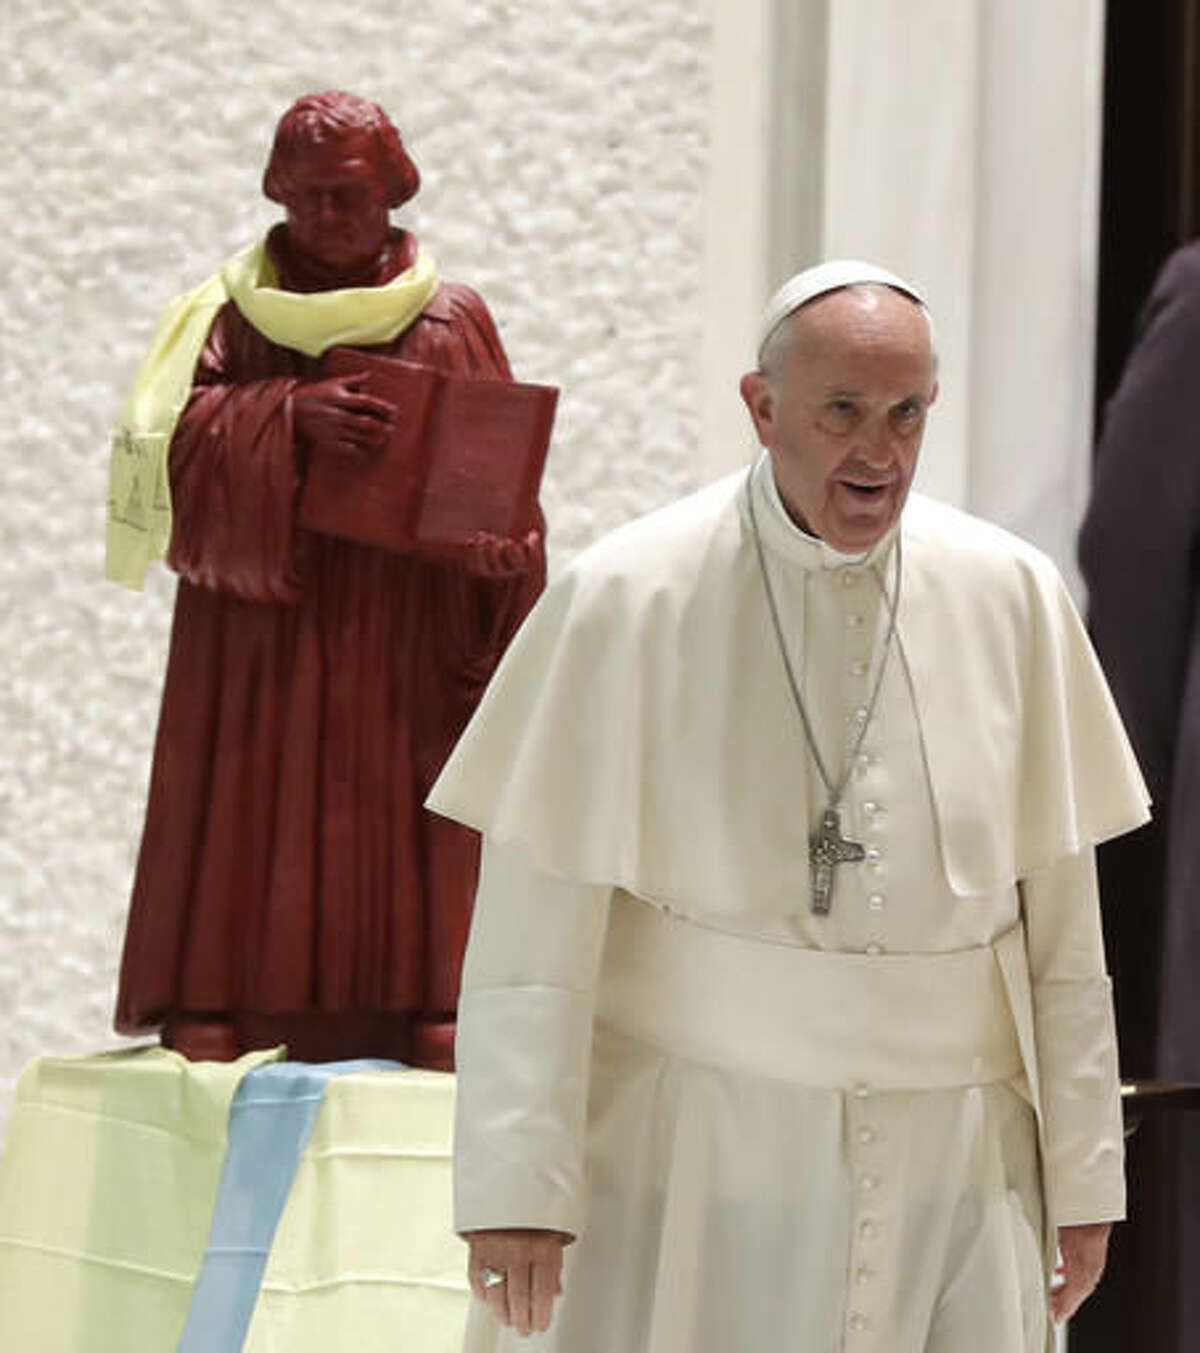 FILE -- In this file photo taken on Oct. 13, 2016, Pope Francis walks by a statue portraying Martin Luther as he arrives for an audience with Lutheran pilgrims at the Vatican. Pope Francis travels to Sweden next week to commemorate the split in Western Christianity 500 years ago. (AP Photo/Alessandra Tarantino)